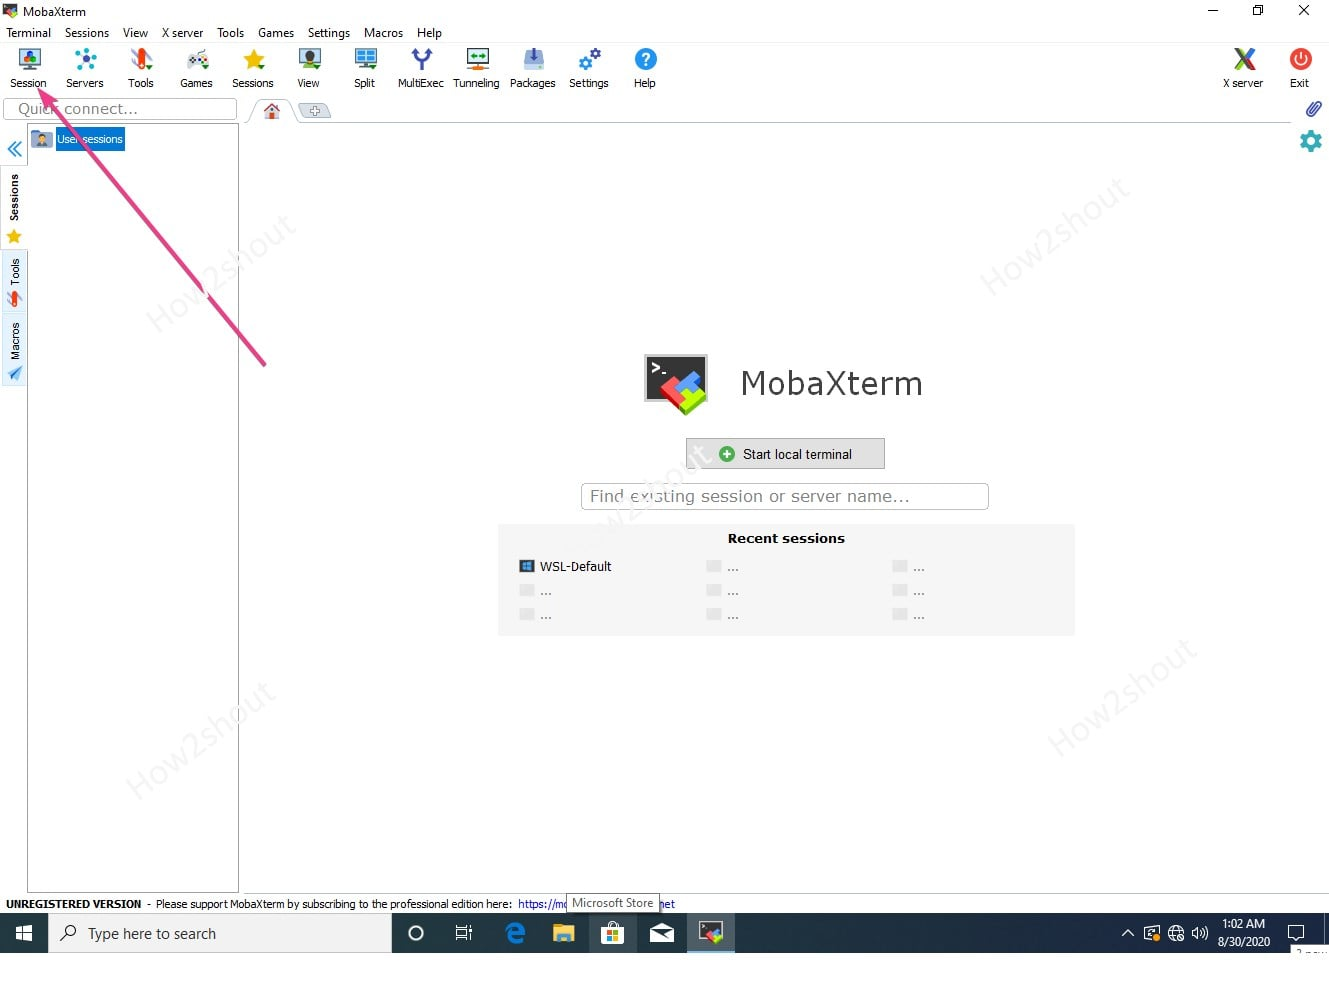 Select MobaXterm session